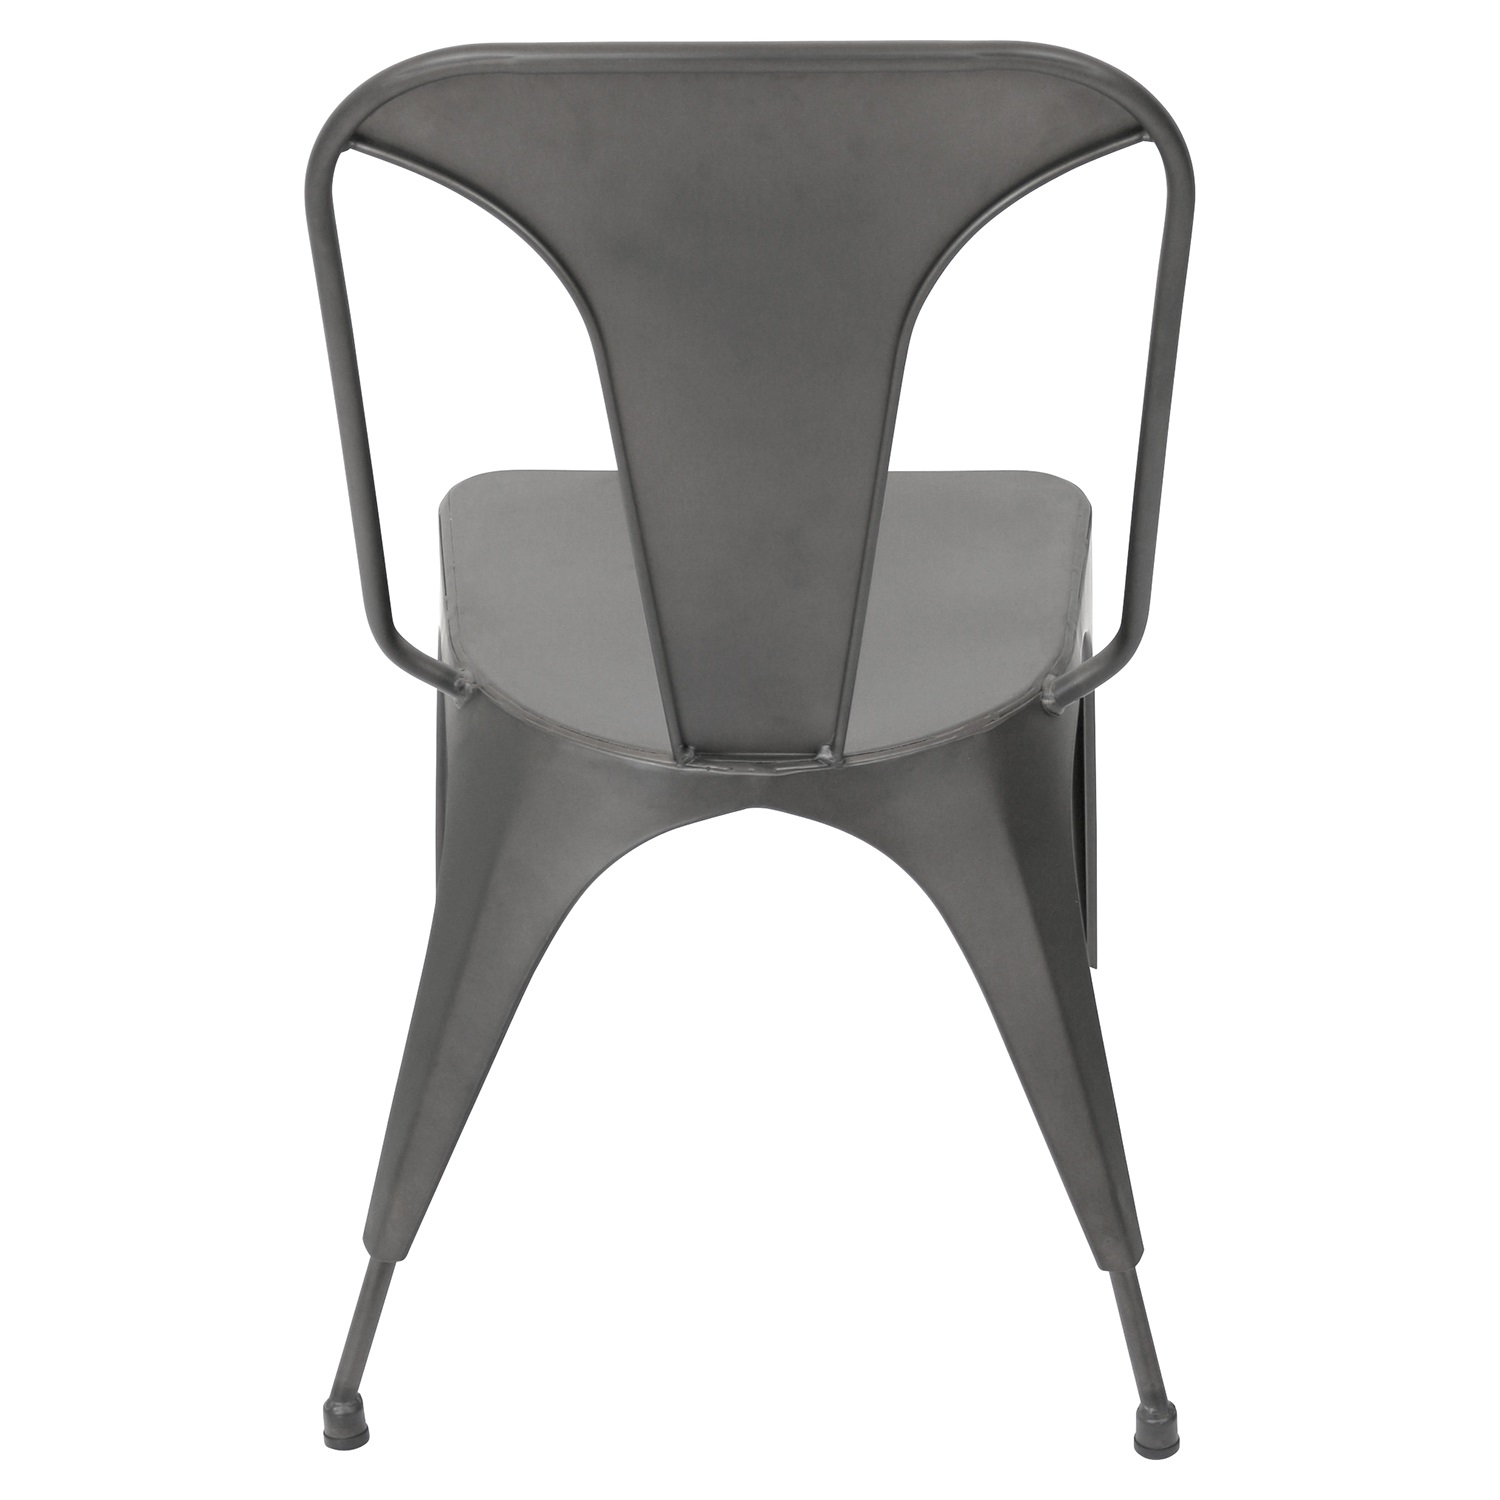 Austin Dining Chair - Matte Gray (Set of 2) - LMS-DC-TW-AU-GY2